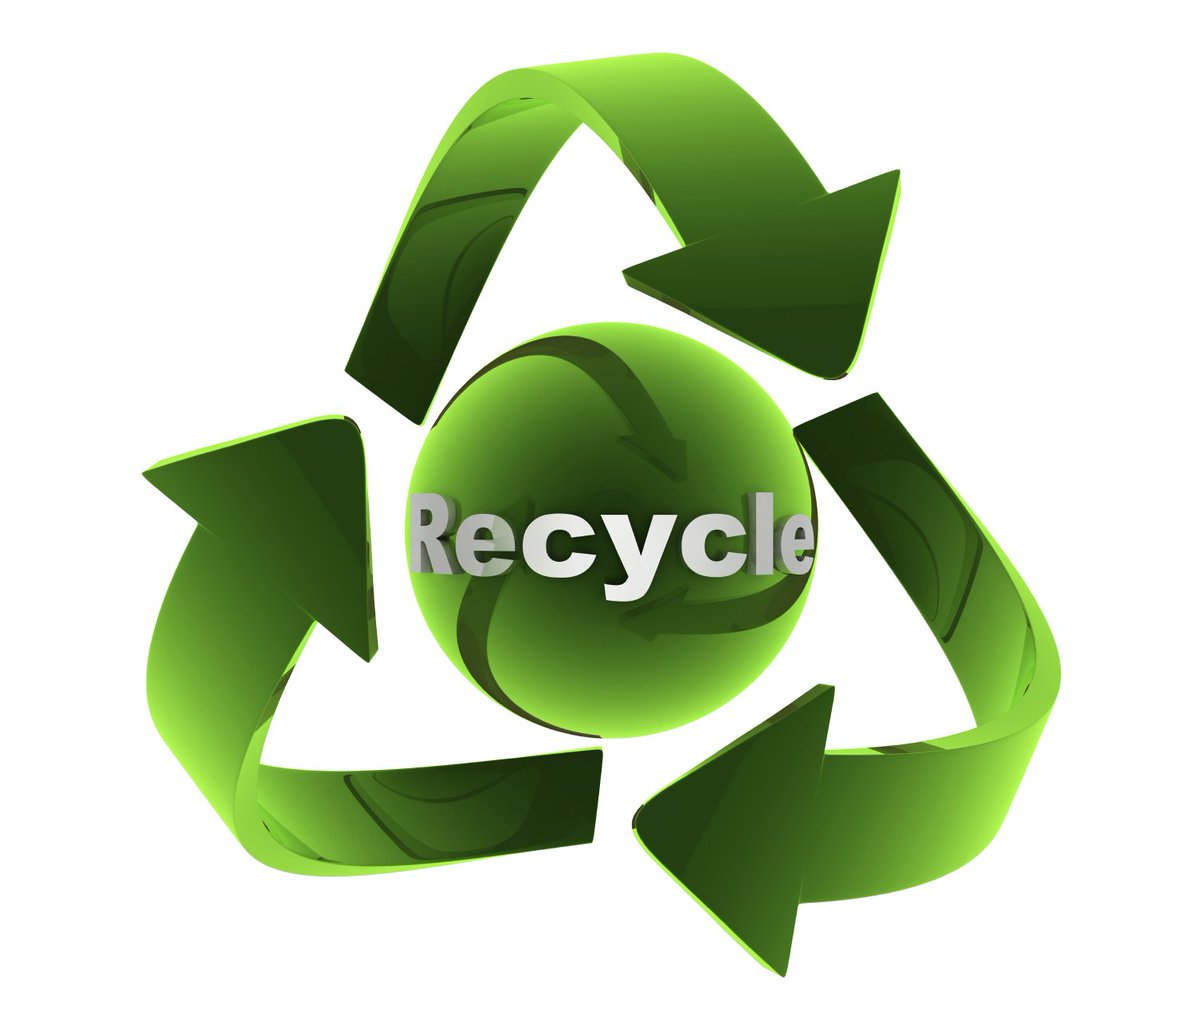 Recycle your used #electronics #cateredfood #winecorks #pappers using #VRV program..#recycle your #waste..  http:// bit.ly/2gGWBYO  &nbsp;  <br>http://pic.twitter.com/98ef8tKuHQ